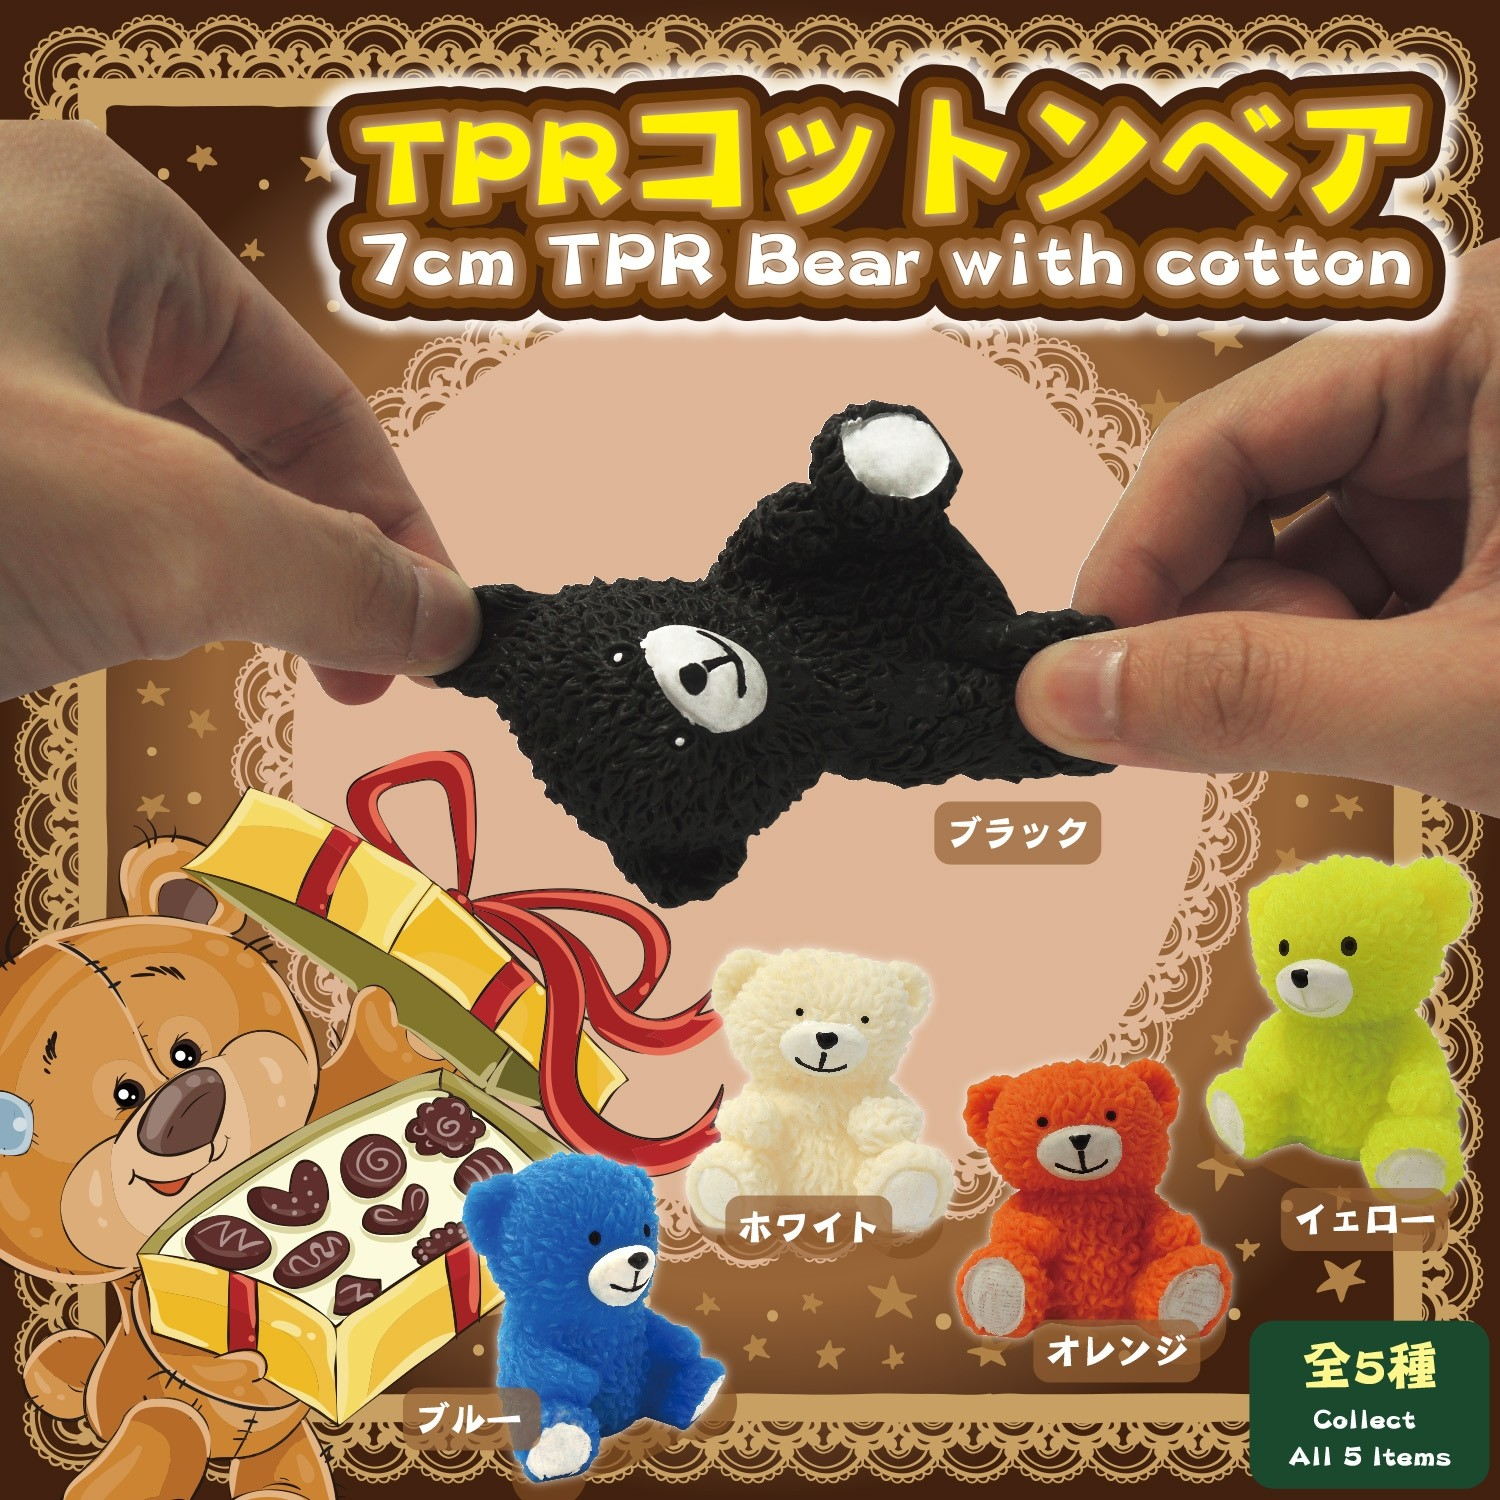 7cm TPR Bear with cotton